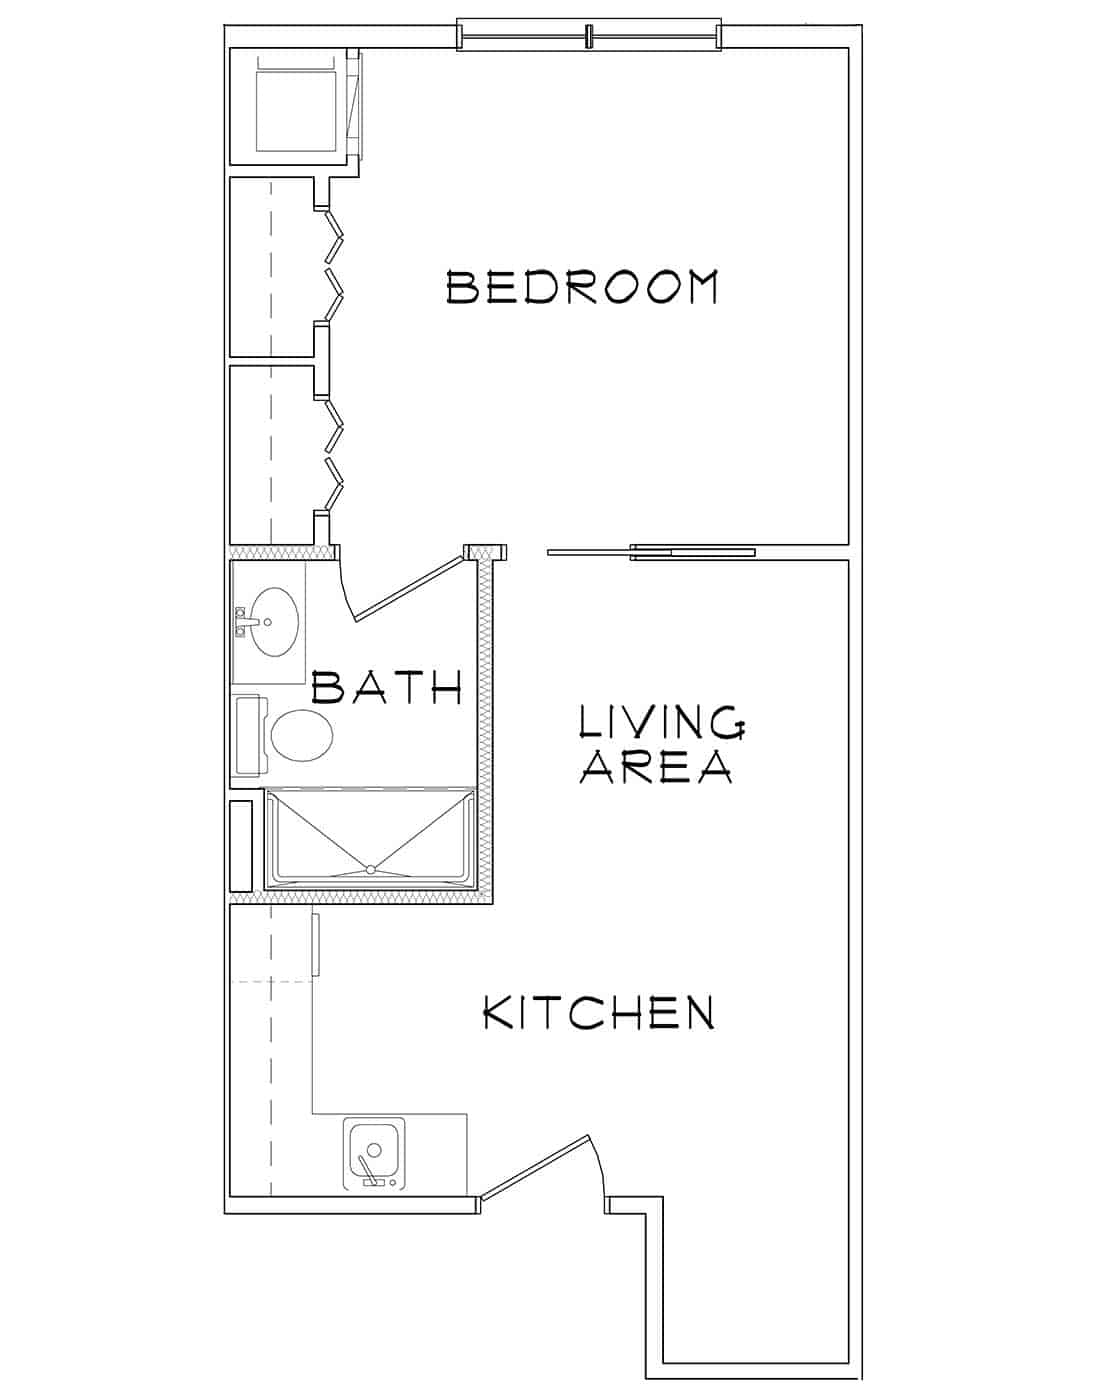 Calico – 1BR/1BA – 465 Sq. Ft.